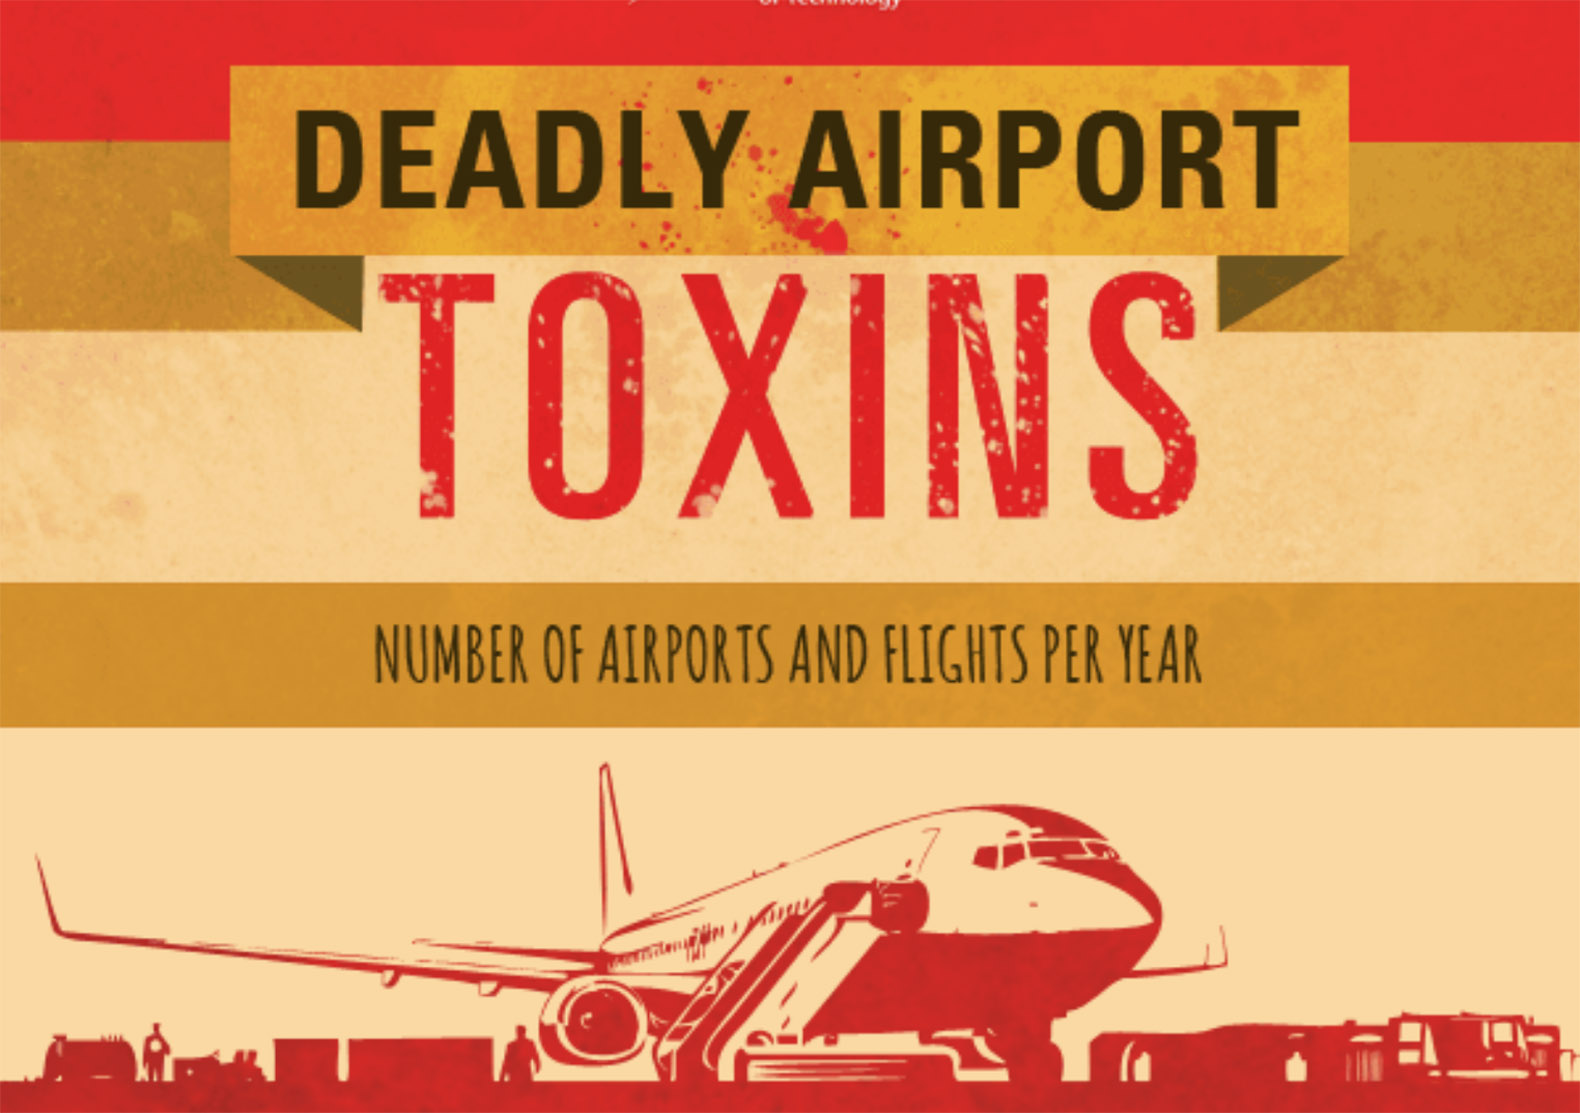 INFOGRAPHIC: The toxic dangers of living near an airport